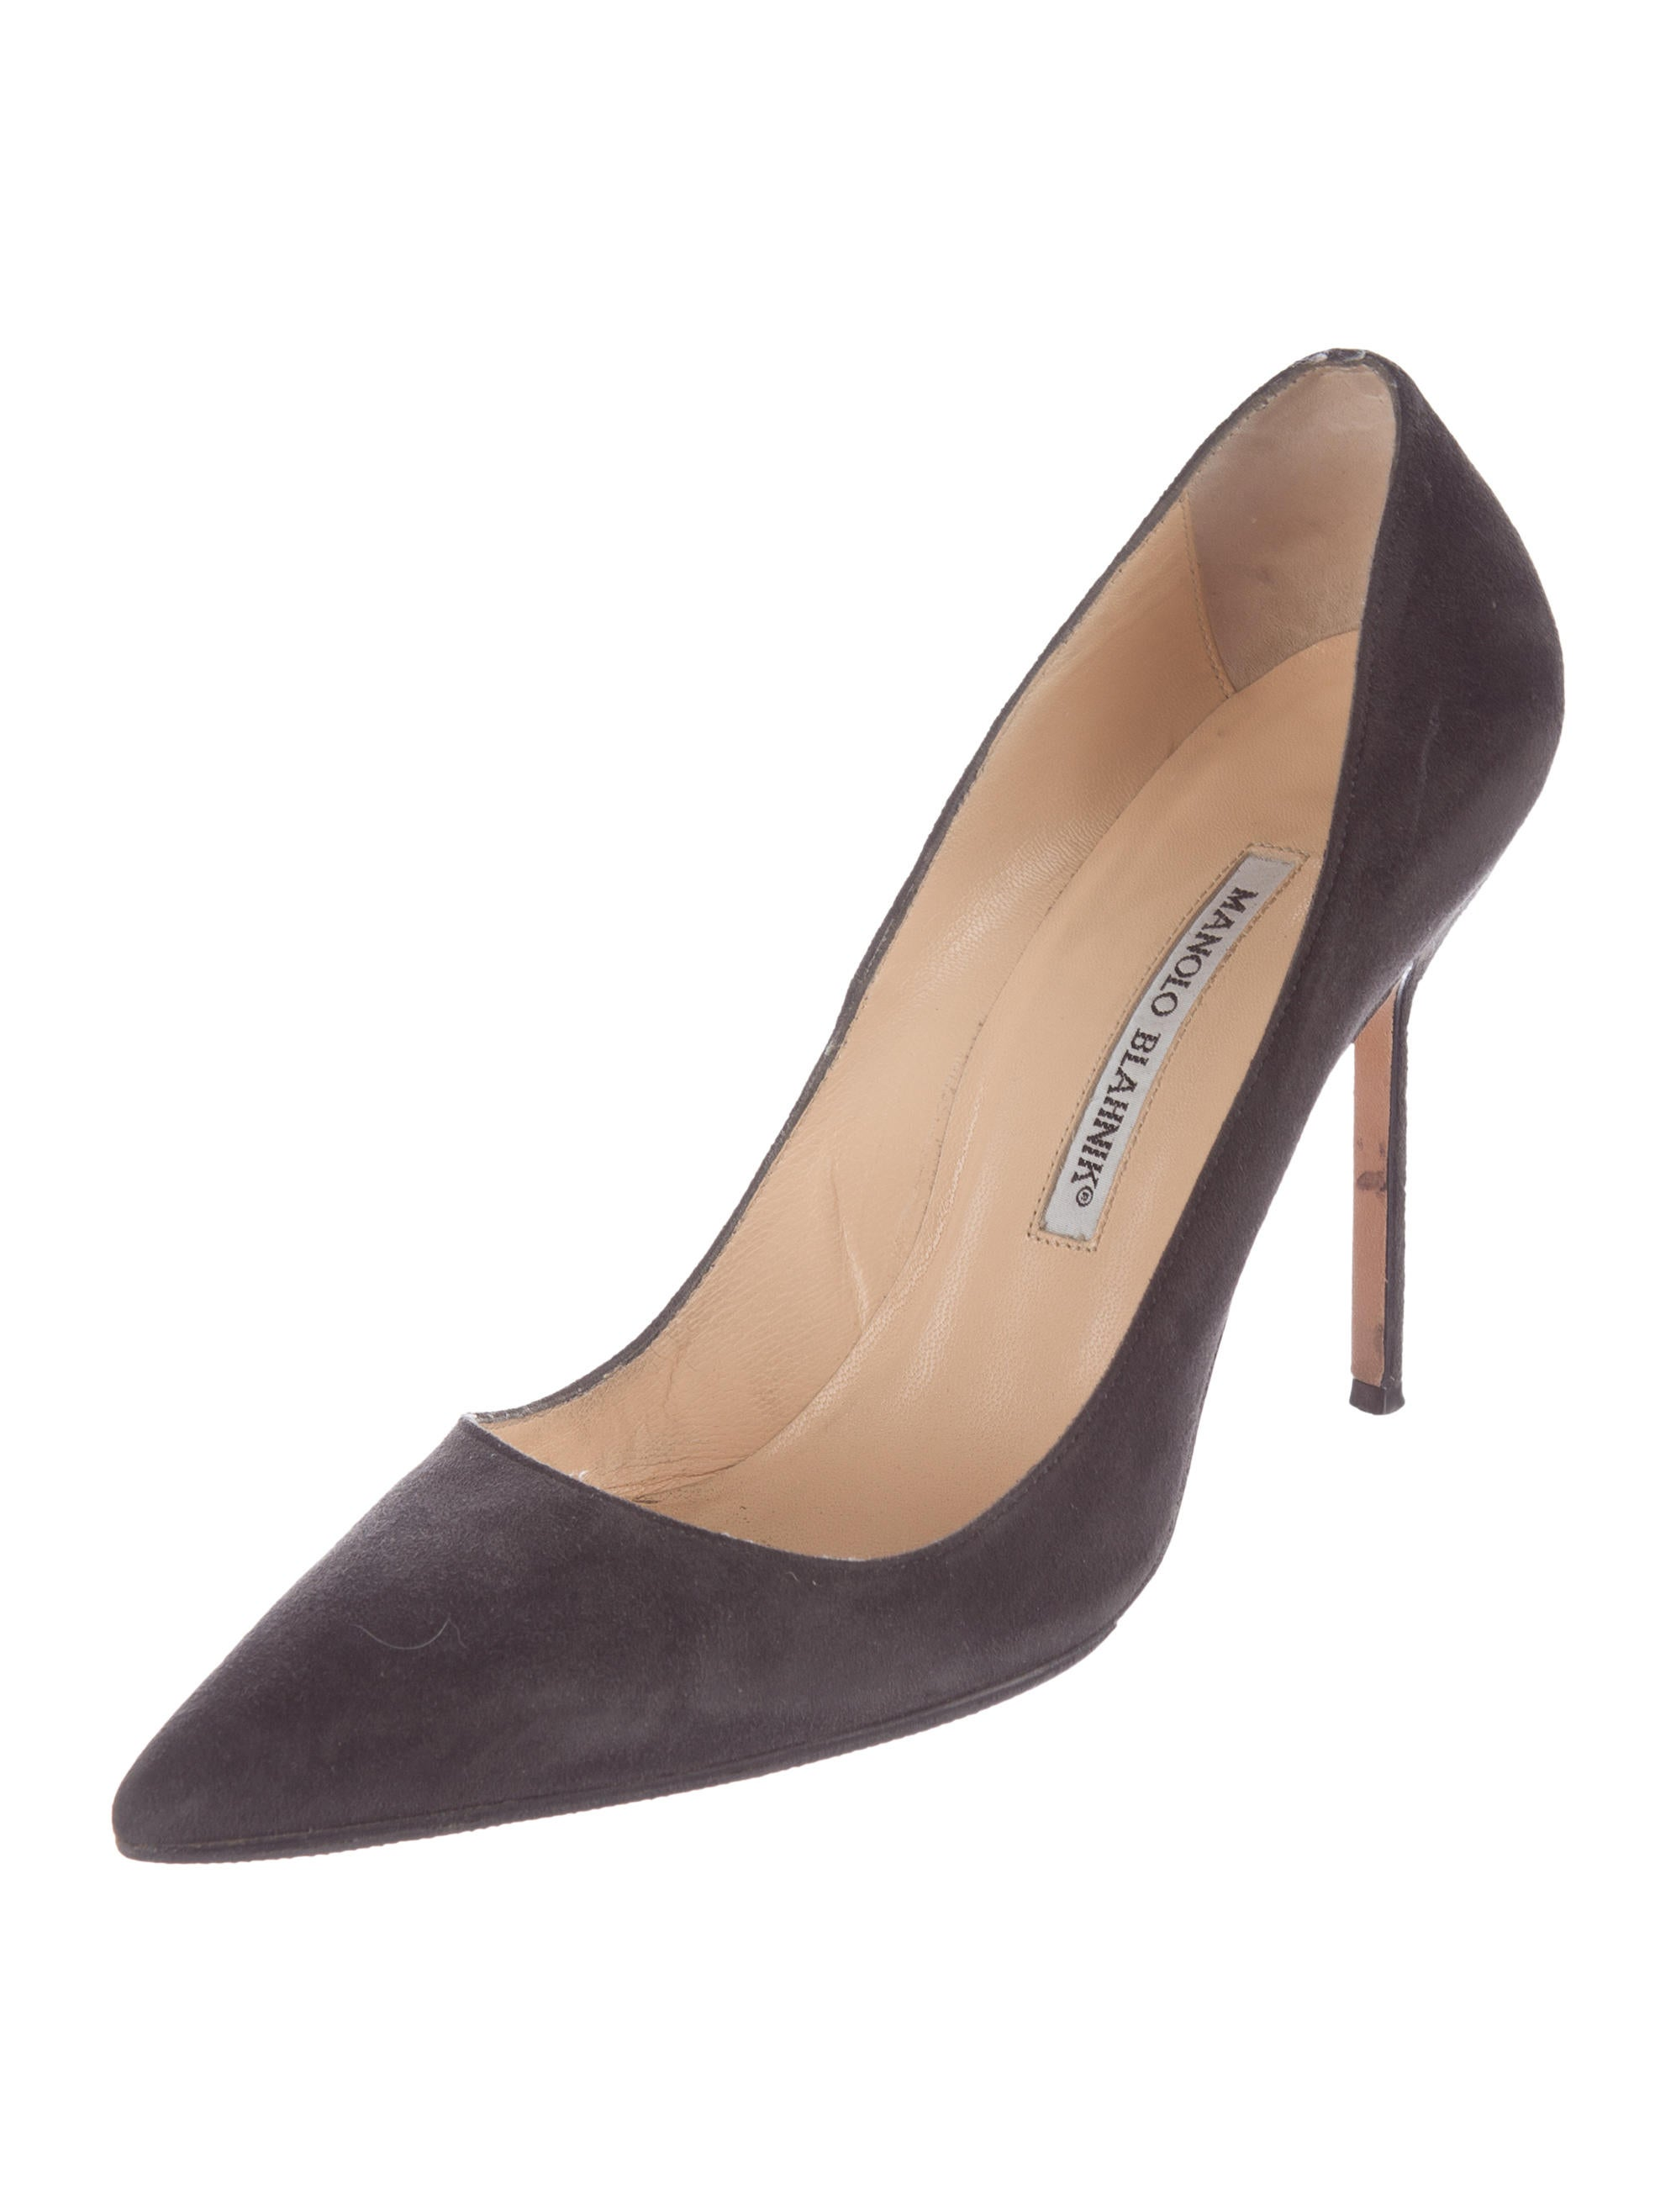 Manolo blahnik bb suede pumps shoes moo61916 the for Shoes by manolo blahnik